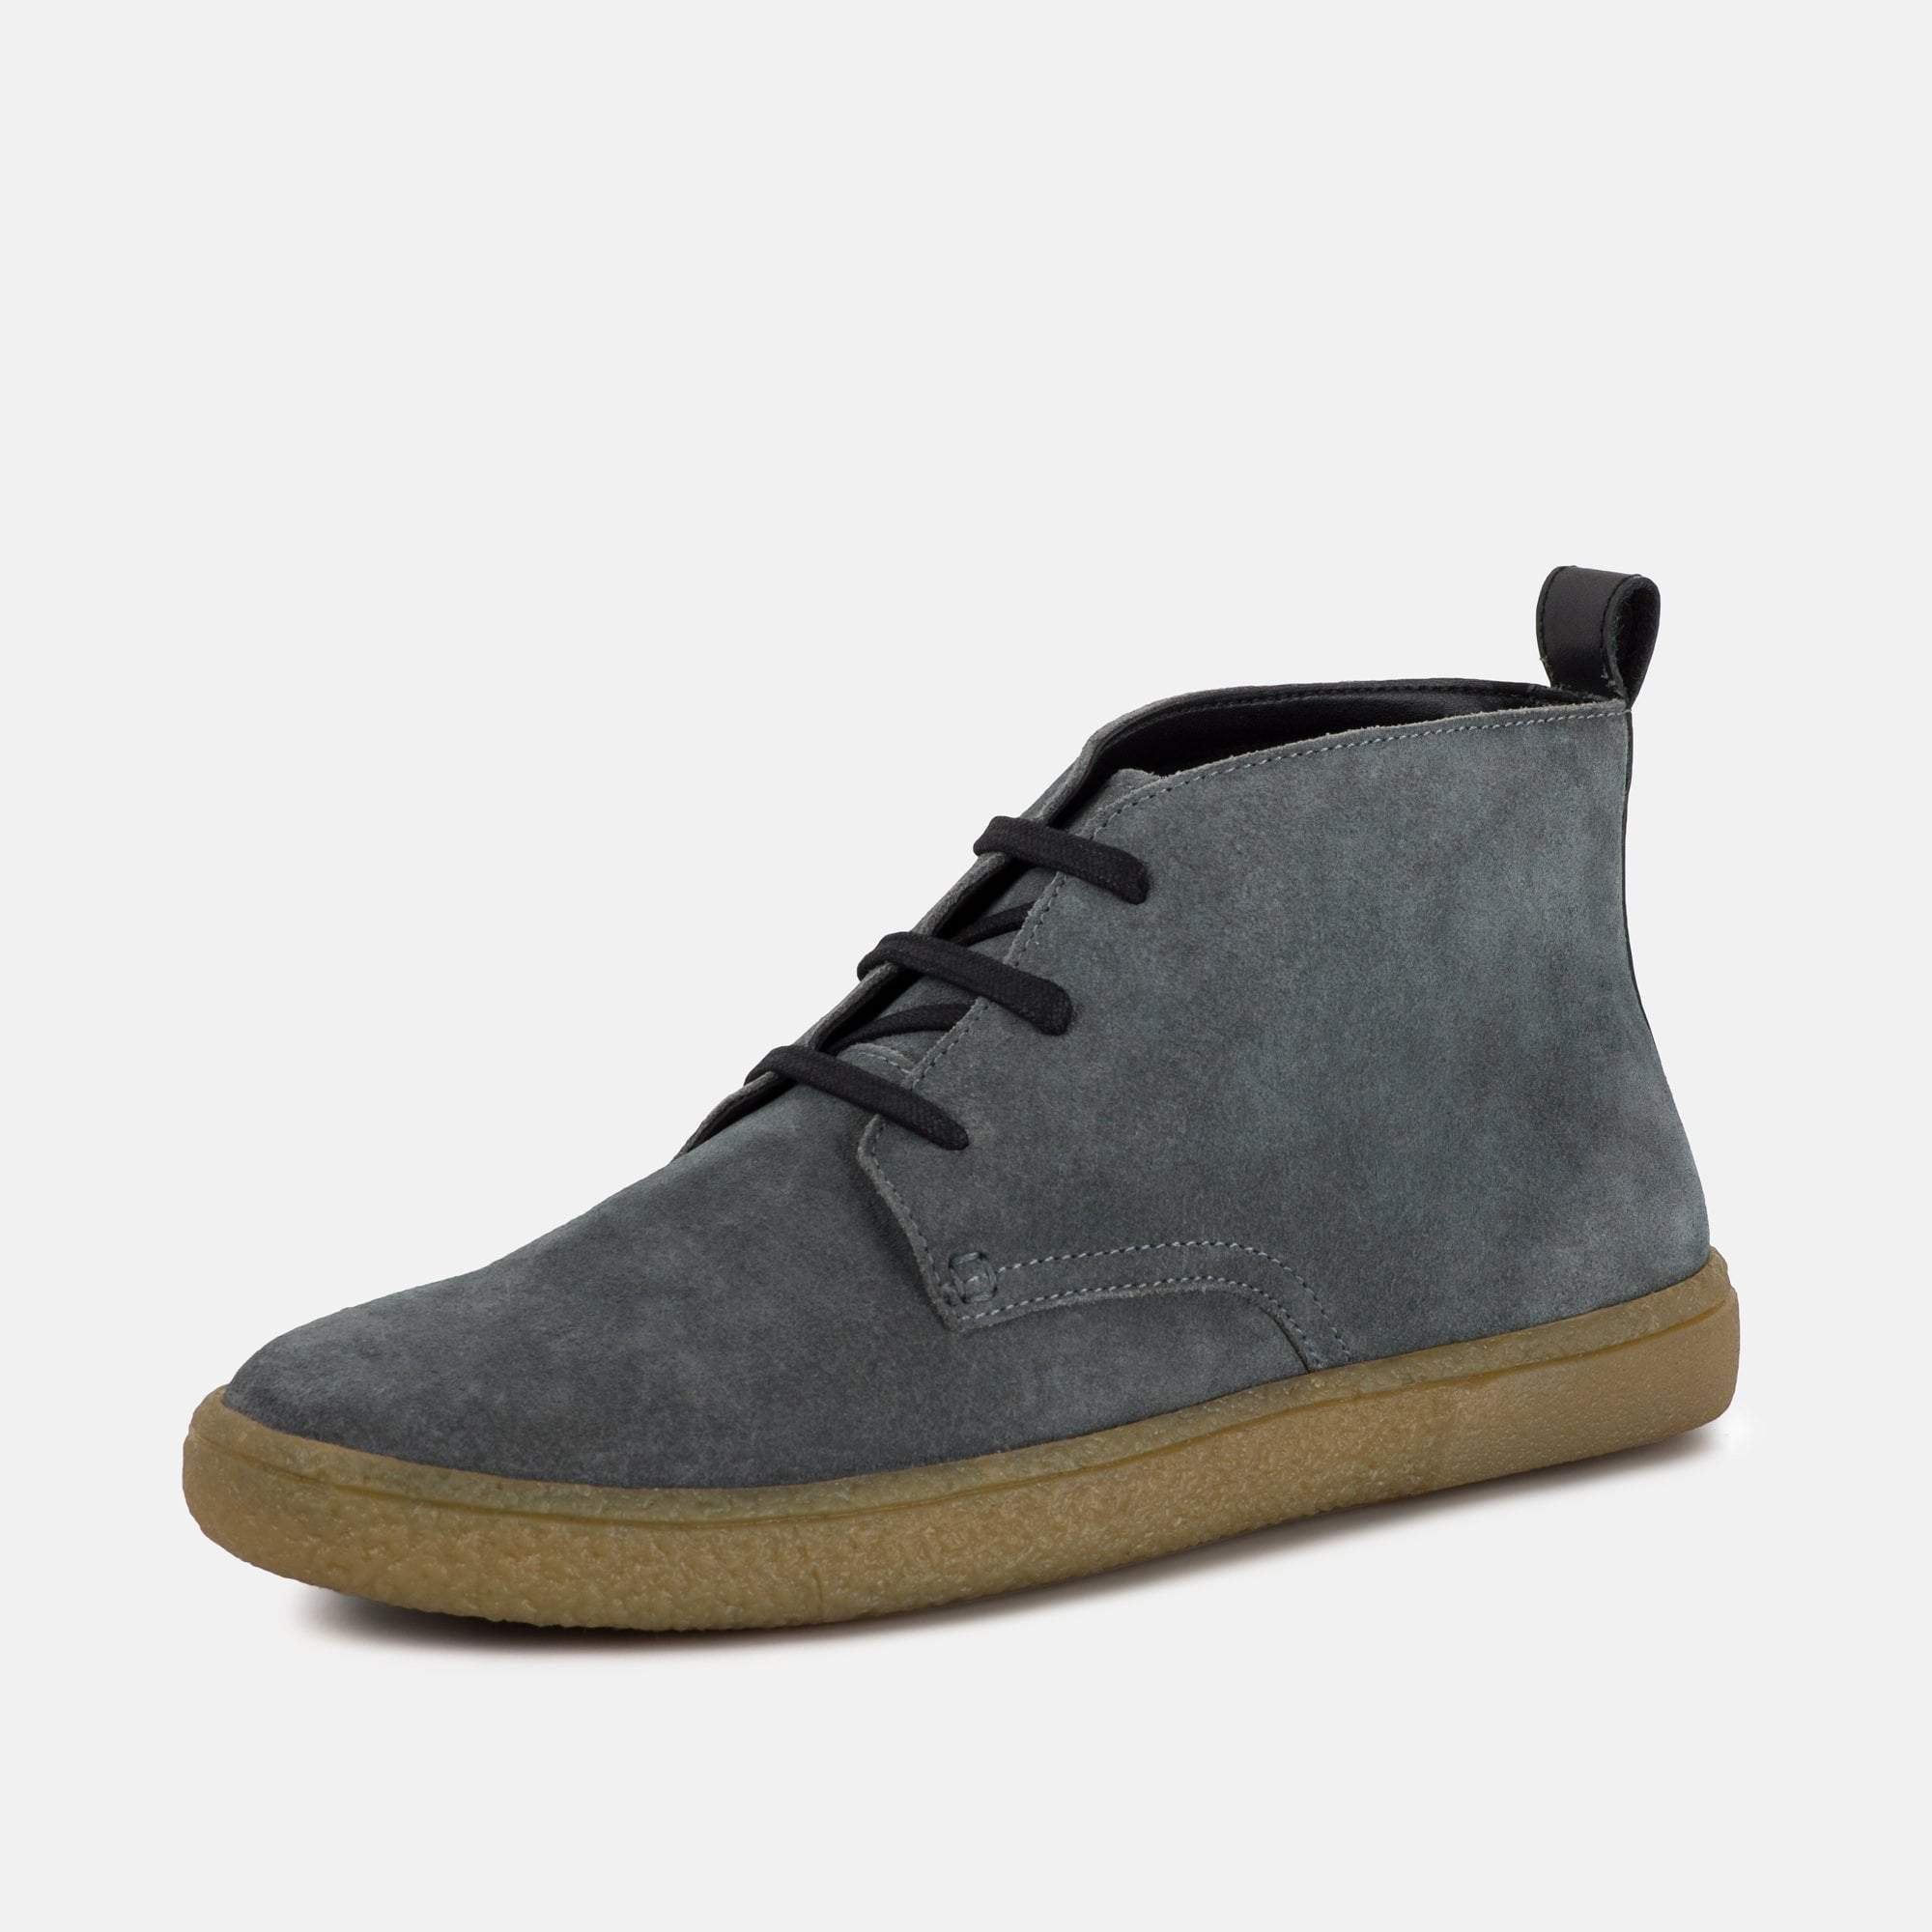 Redfoot Footwear UK 6 / EURO 39 / US 7 / Grey / Nubuck MARSH STONE